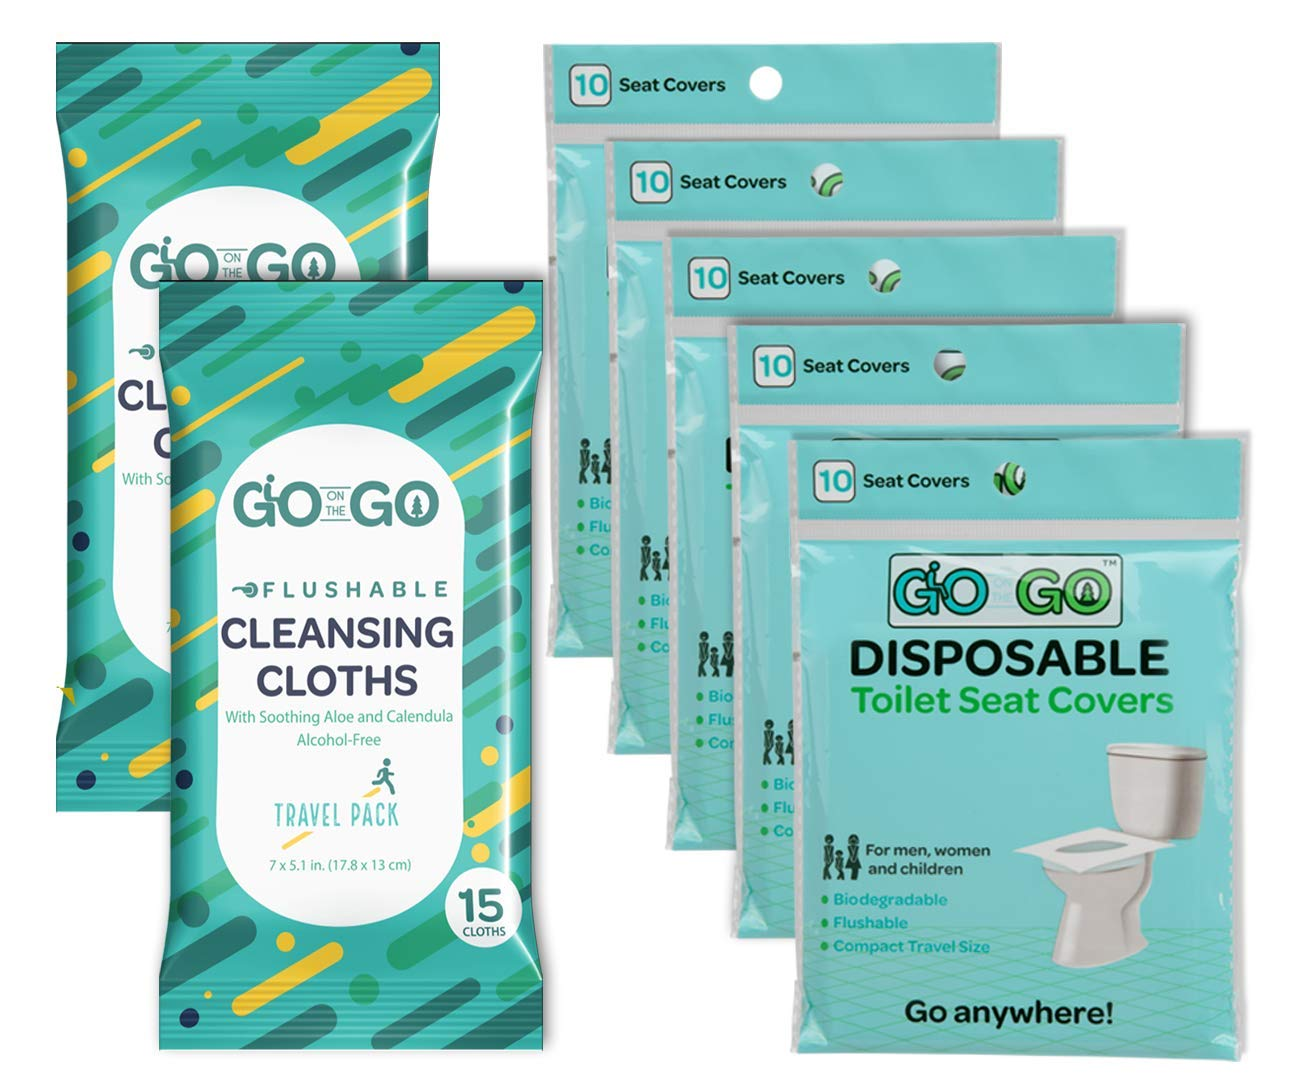 Travel Toilet Seat Covers by Go on the Go - 50 Flushable & Disposable Toilet Seat Covers for Travel Accessories, Kids & Toddler Potty Training (5 Packs of 10) Plus 30 Free Flushable Wet Wipes Included